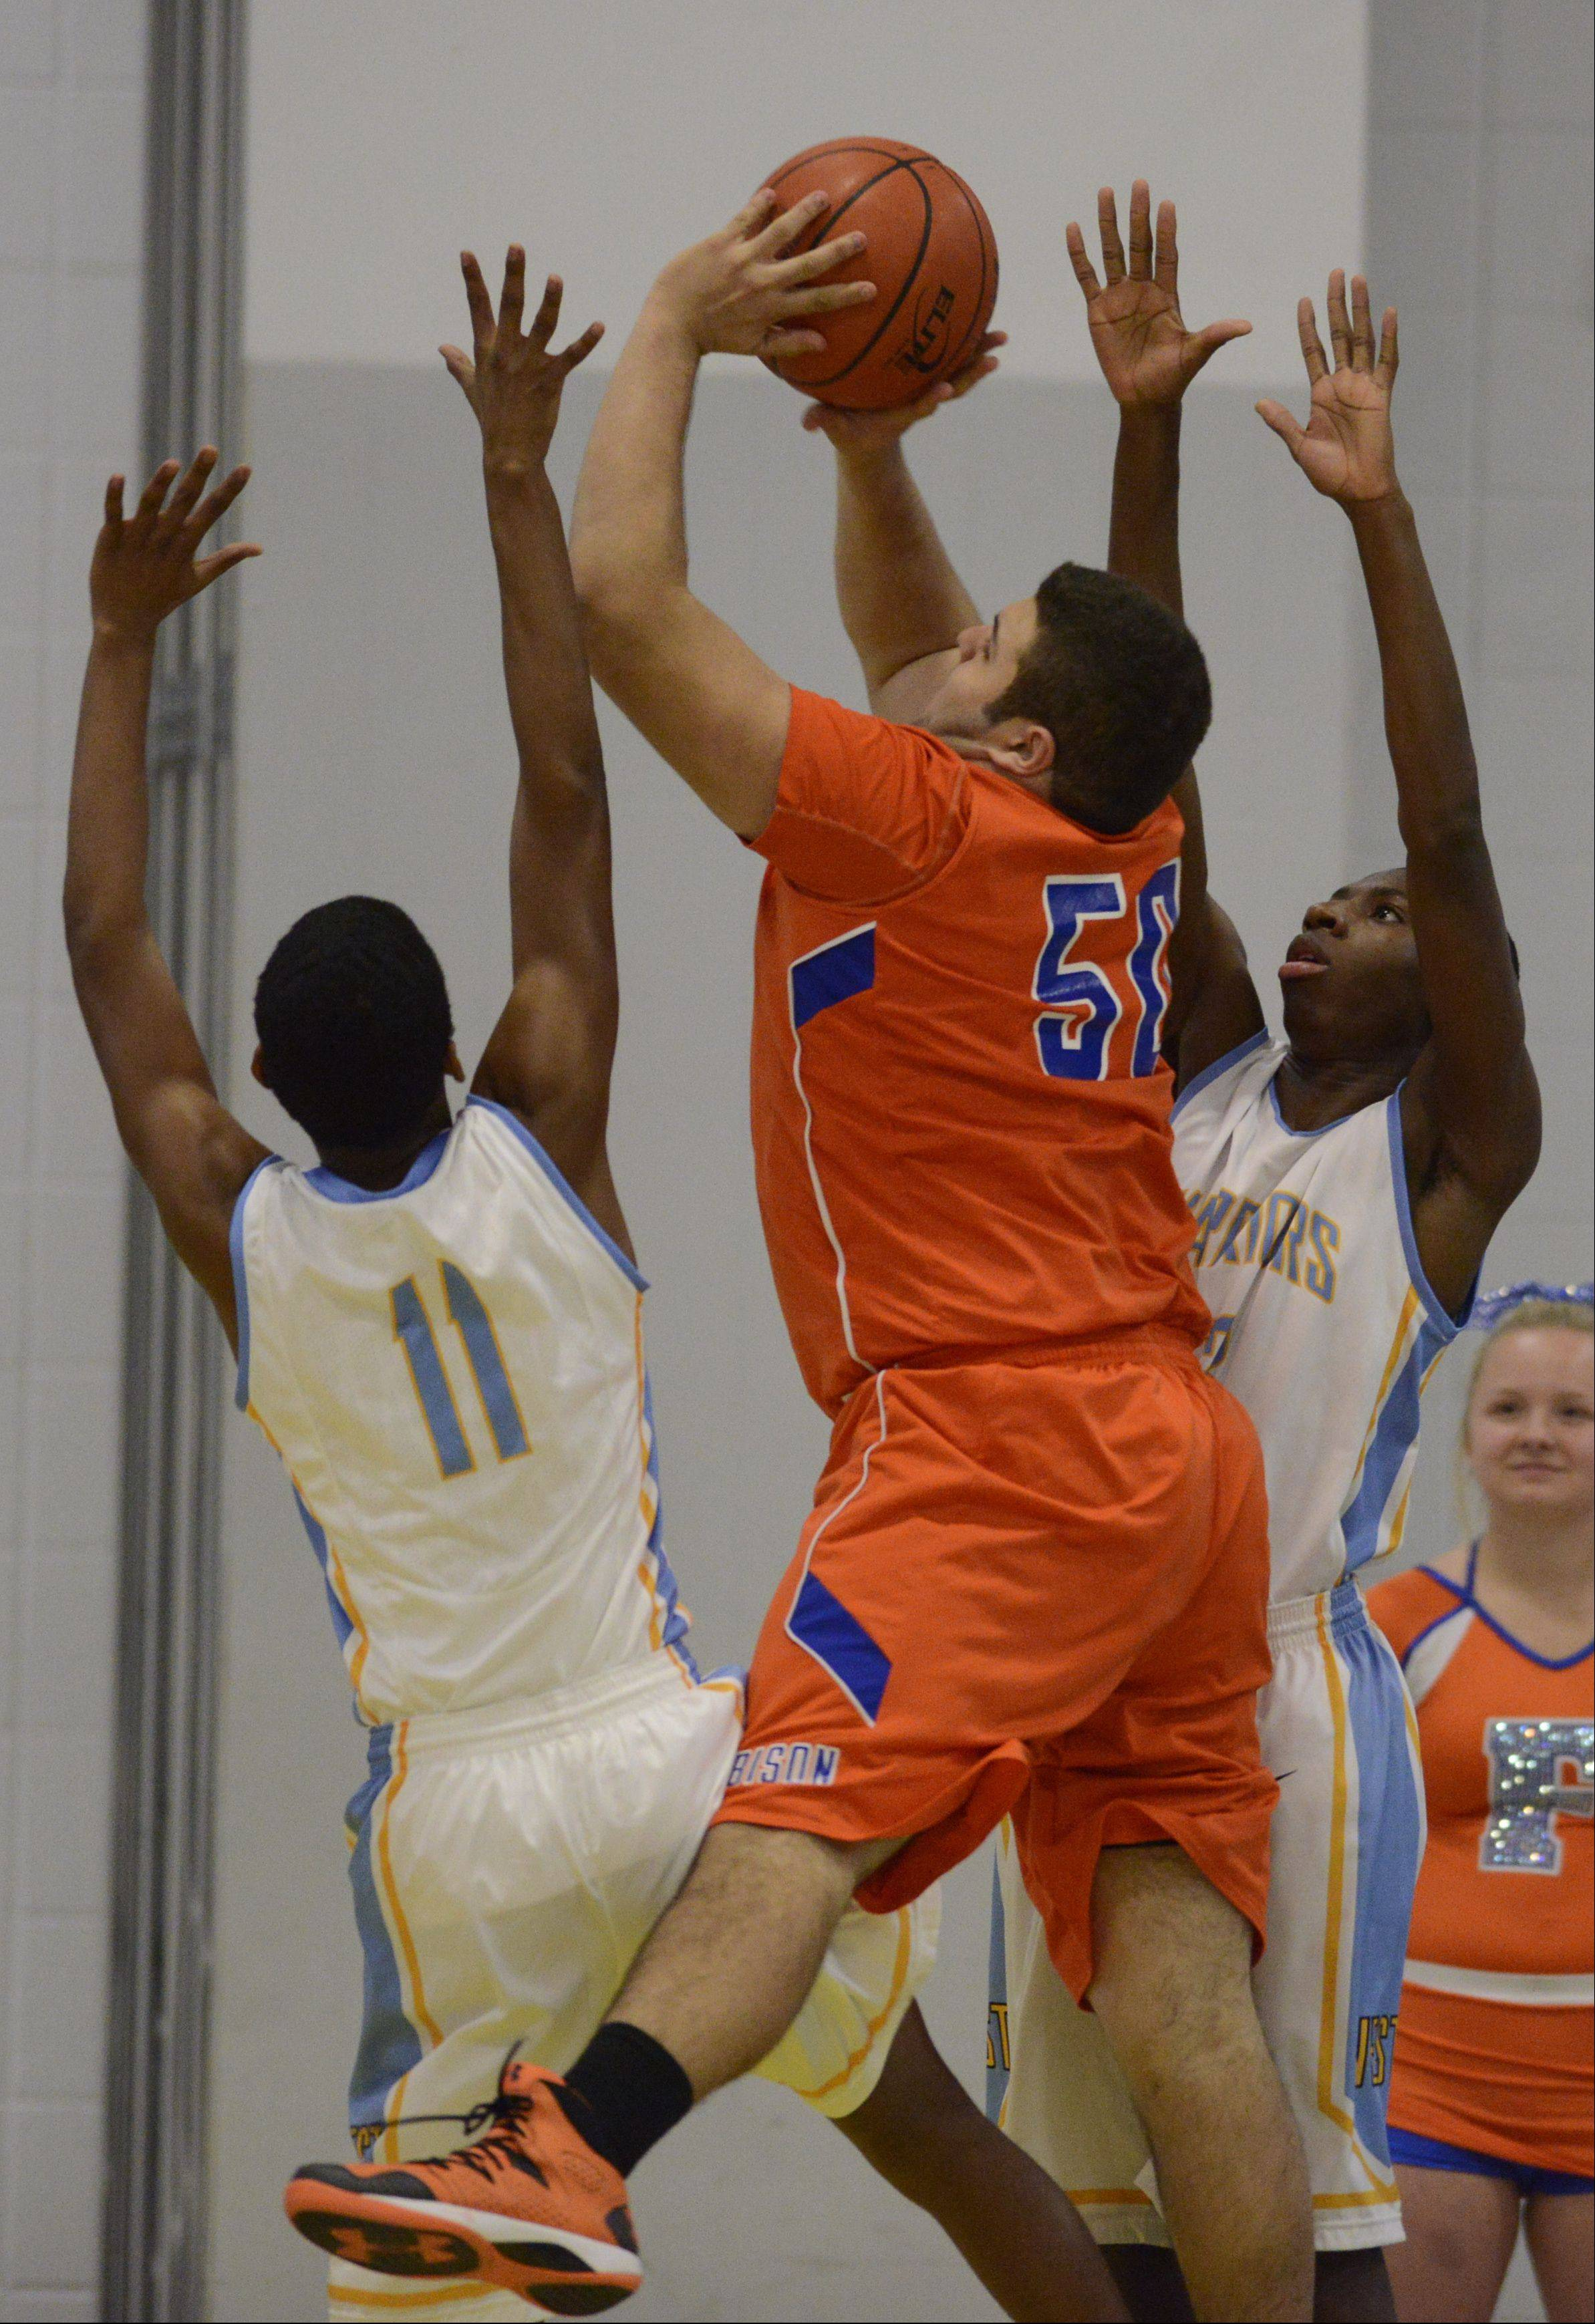 Photos from the Maine West vs. Fenton boys basketball game on Tuesday, January 14th, in Des Plaines.